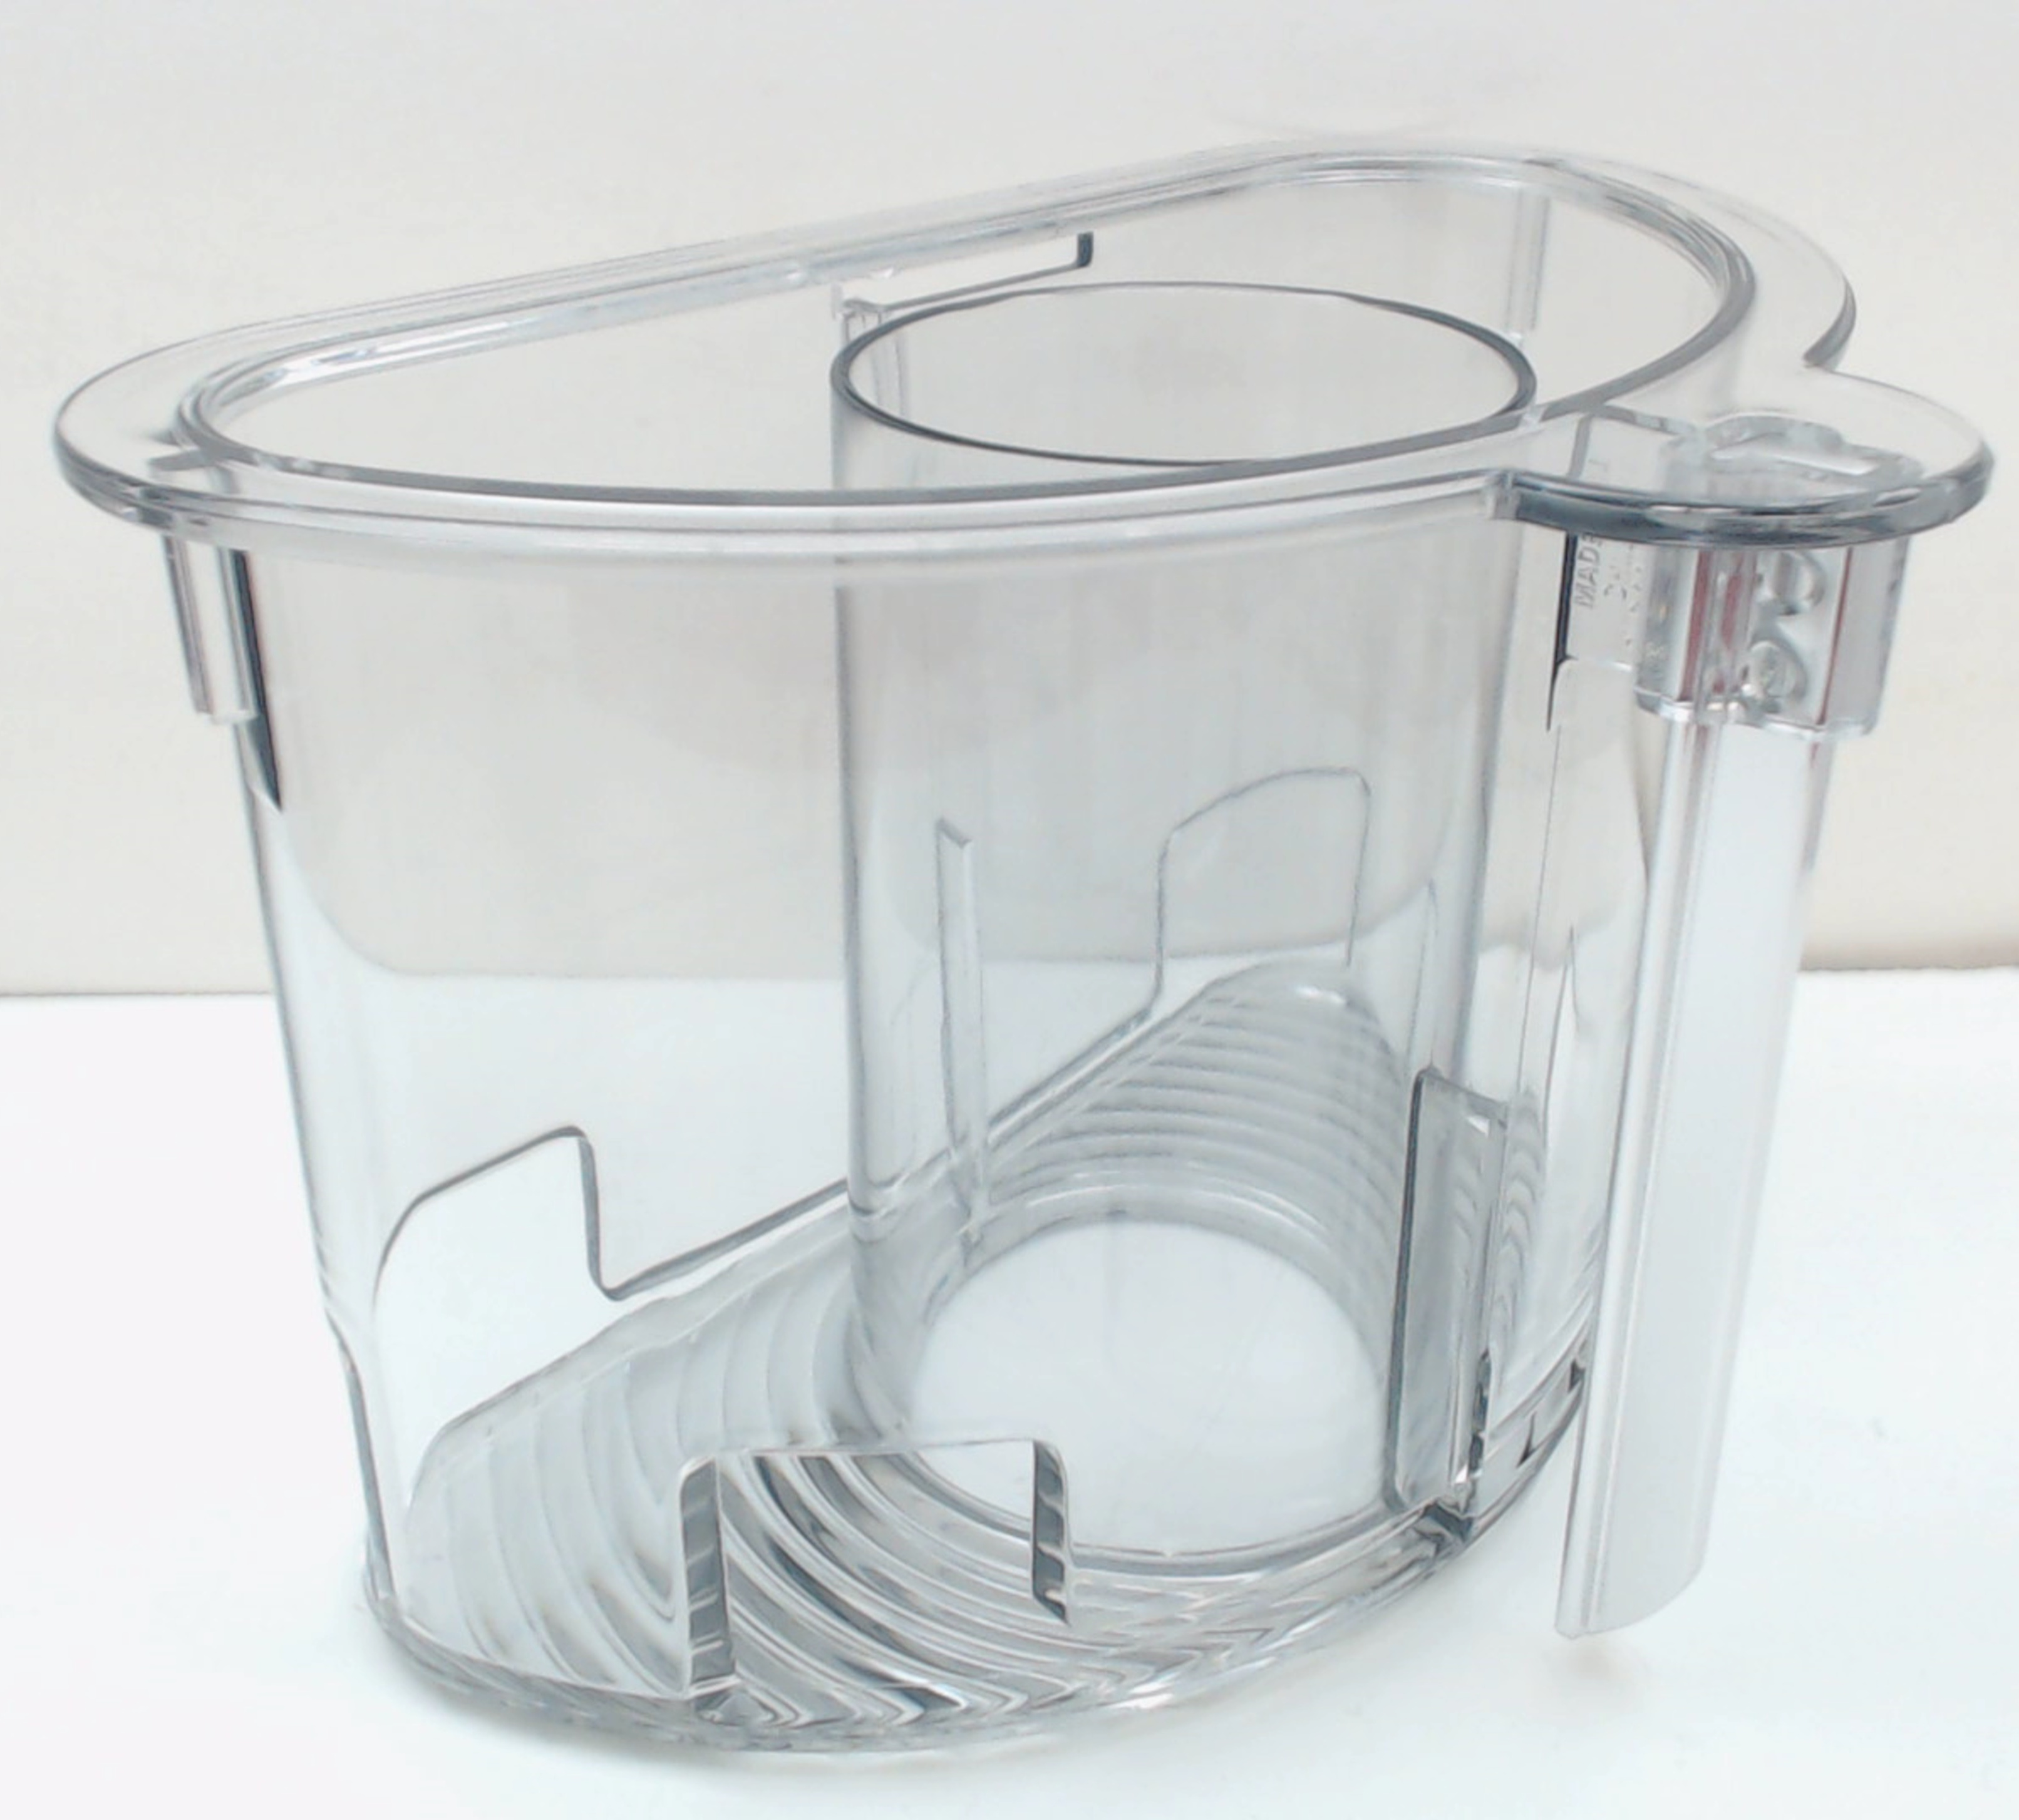 Cuisinart Large Pusher for Food Processor, DLC-2011PN-1